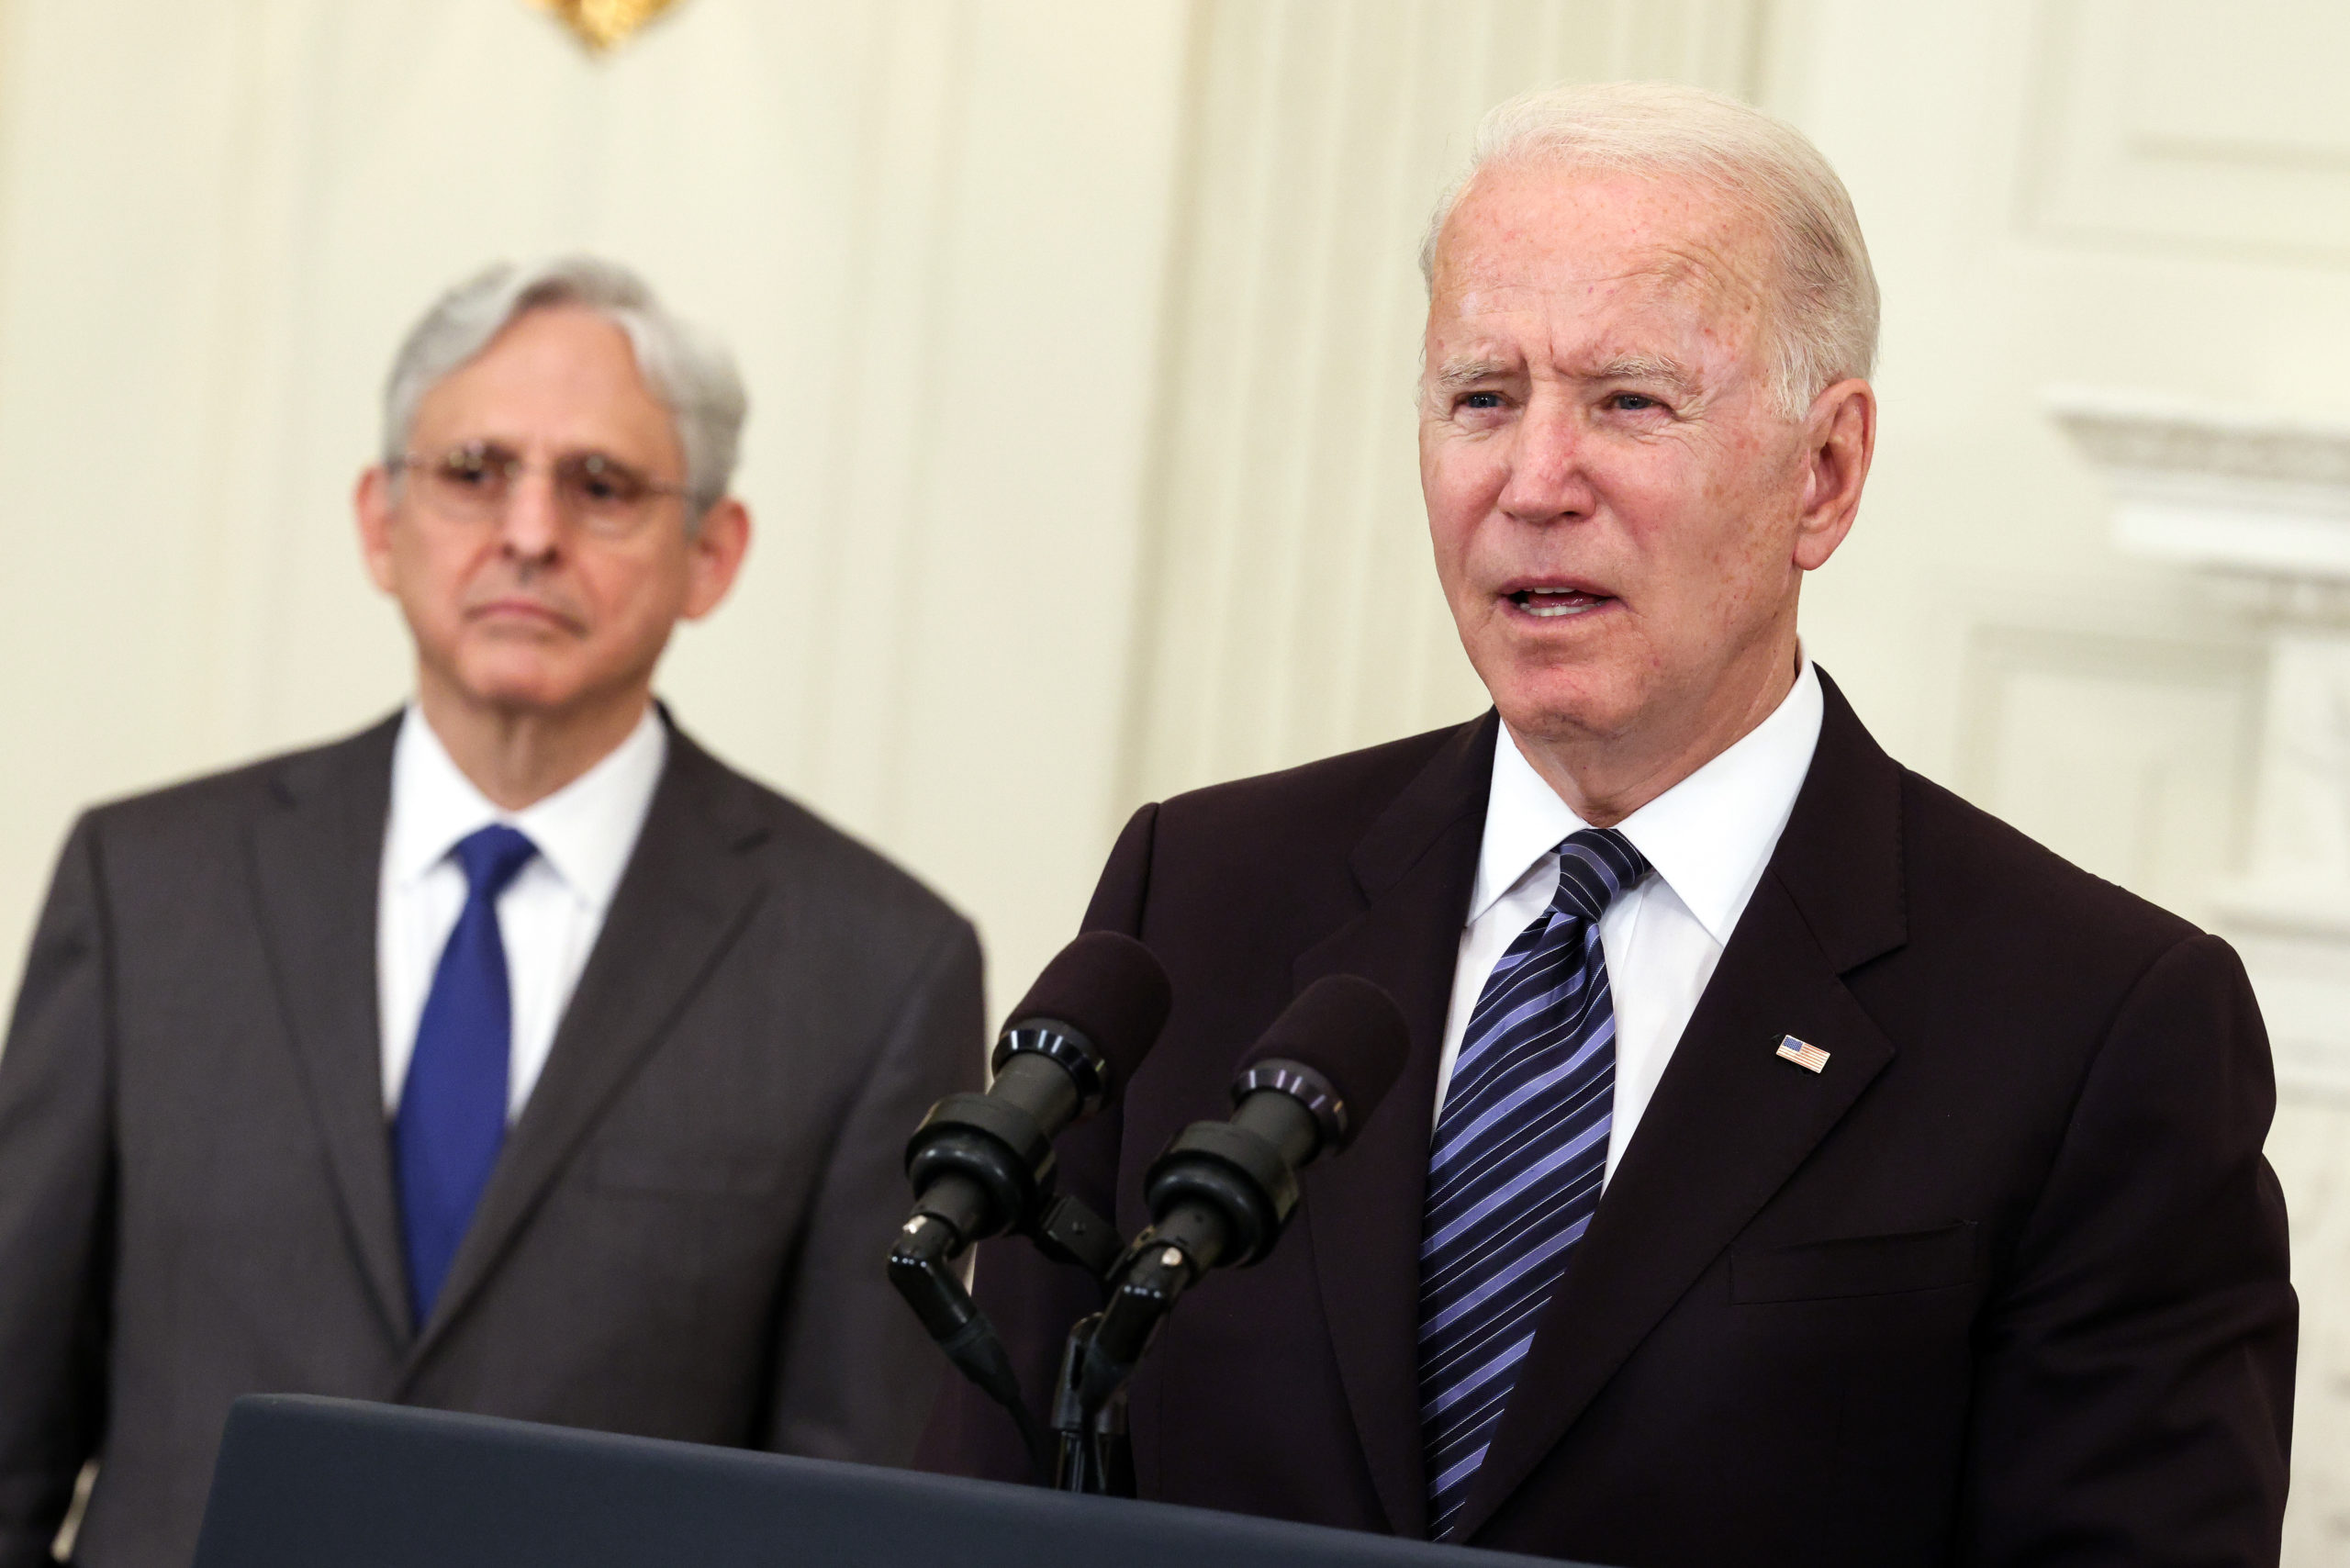 WASHINGTON, DC - JUNE 23: U.S. President Joe Biden, joined Attorney General Merrick Garland, speaks on gun crime prevention measures at the White House on June 23, 2021 in Washington, DC. Biden outlined new measures to curb gun violence including stopping the flow illegal guns and targeting rogue gun dealers. (Photo by Kevin Dietsch/Getty Images)